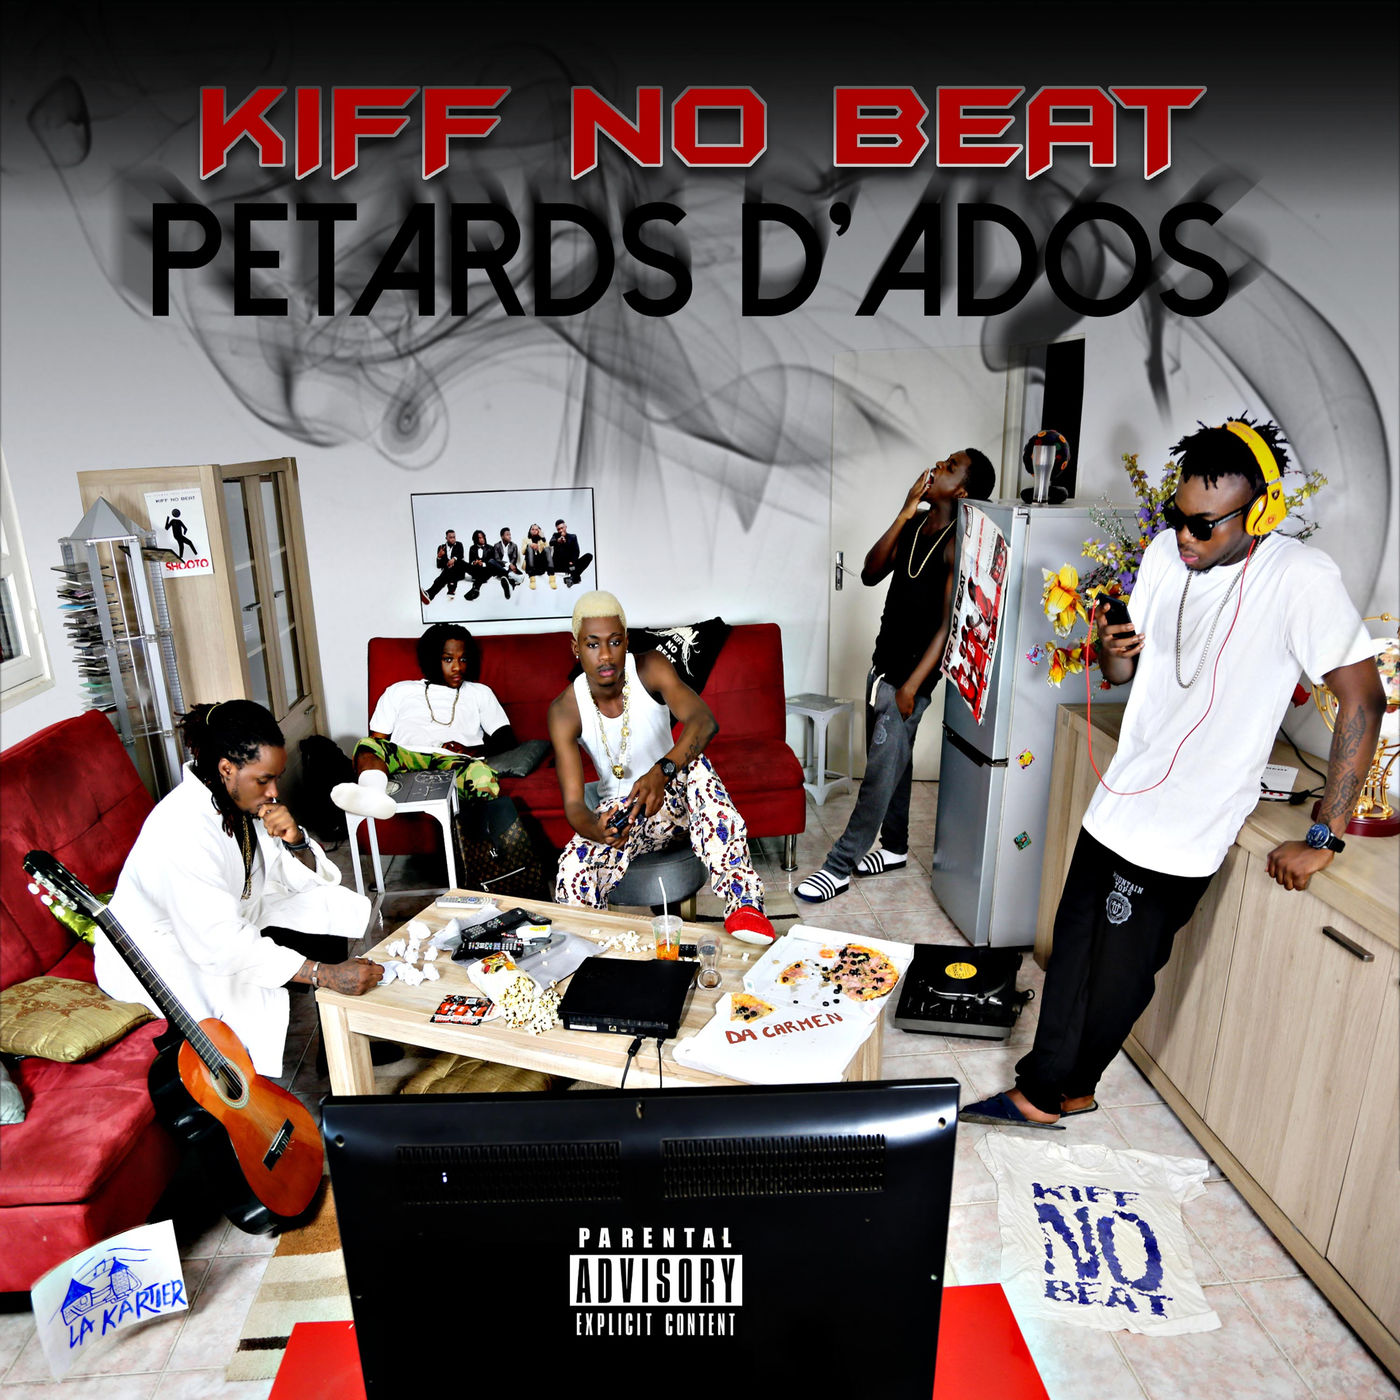 Cover album Pétards d_'ados